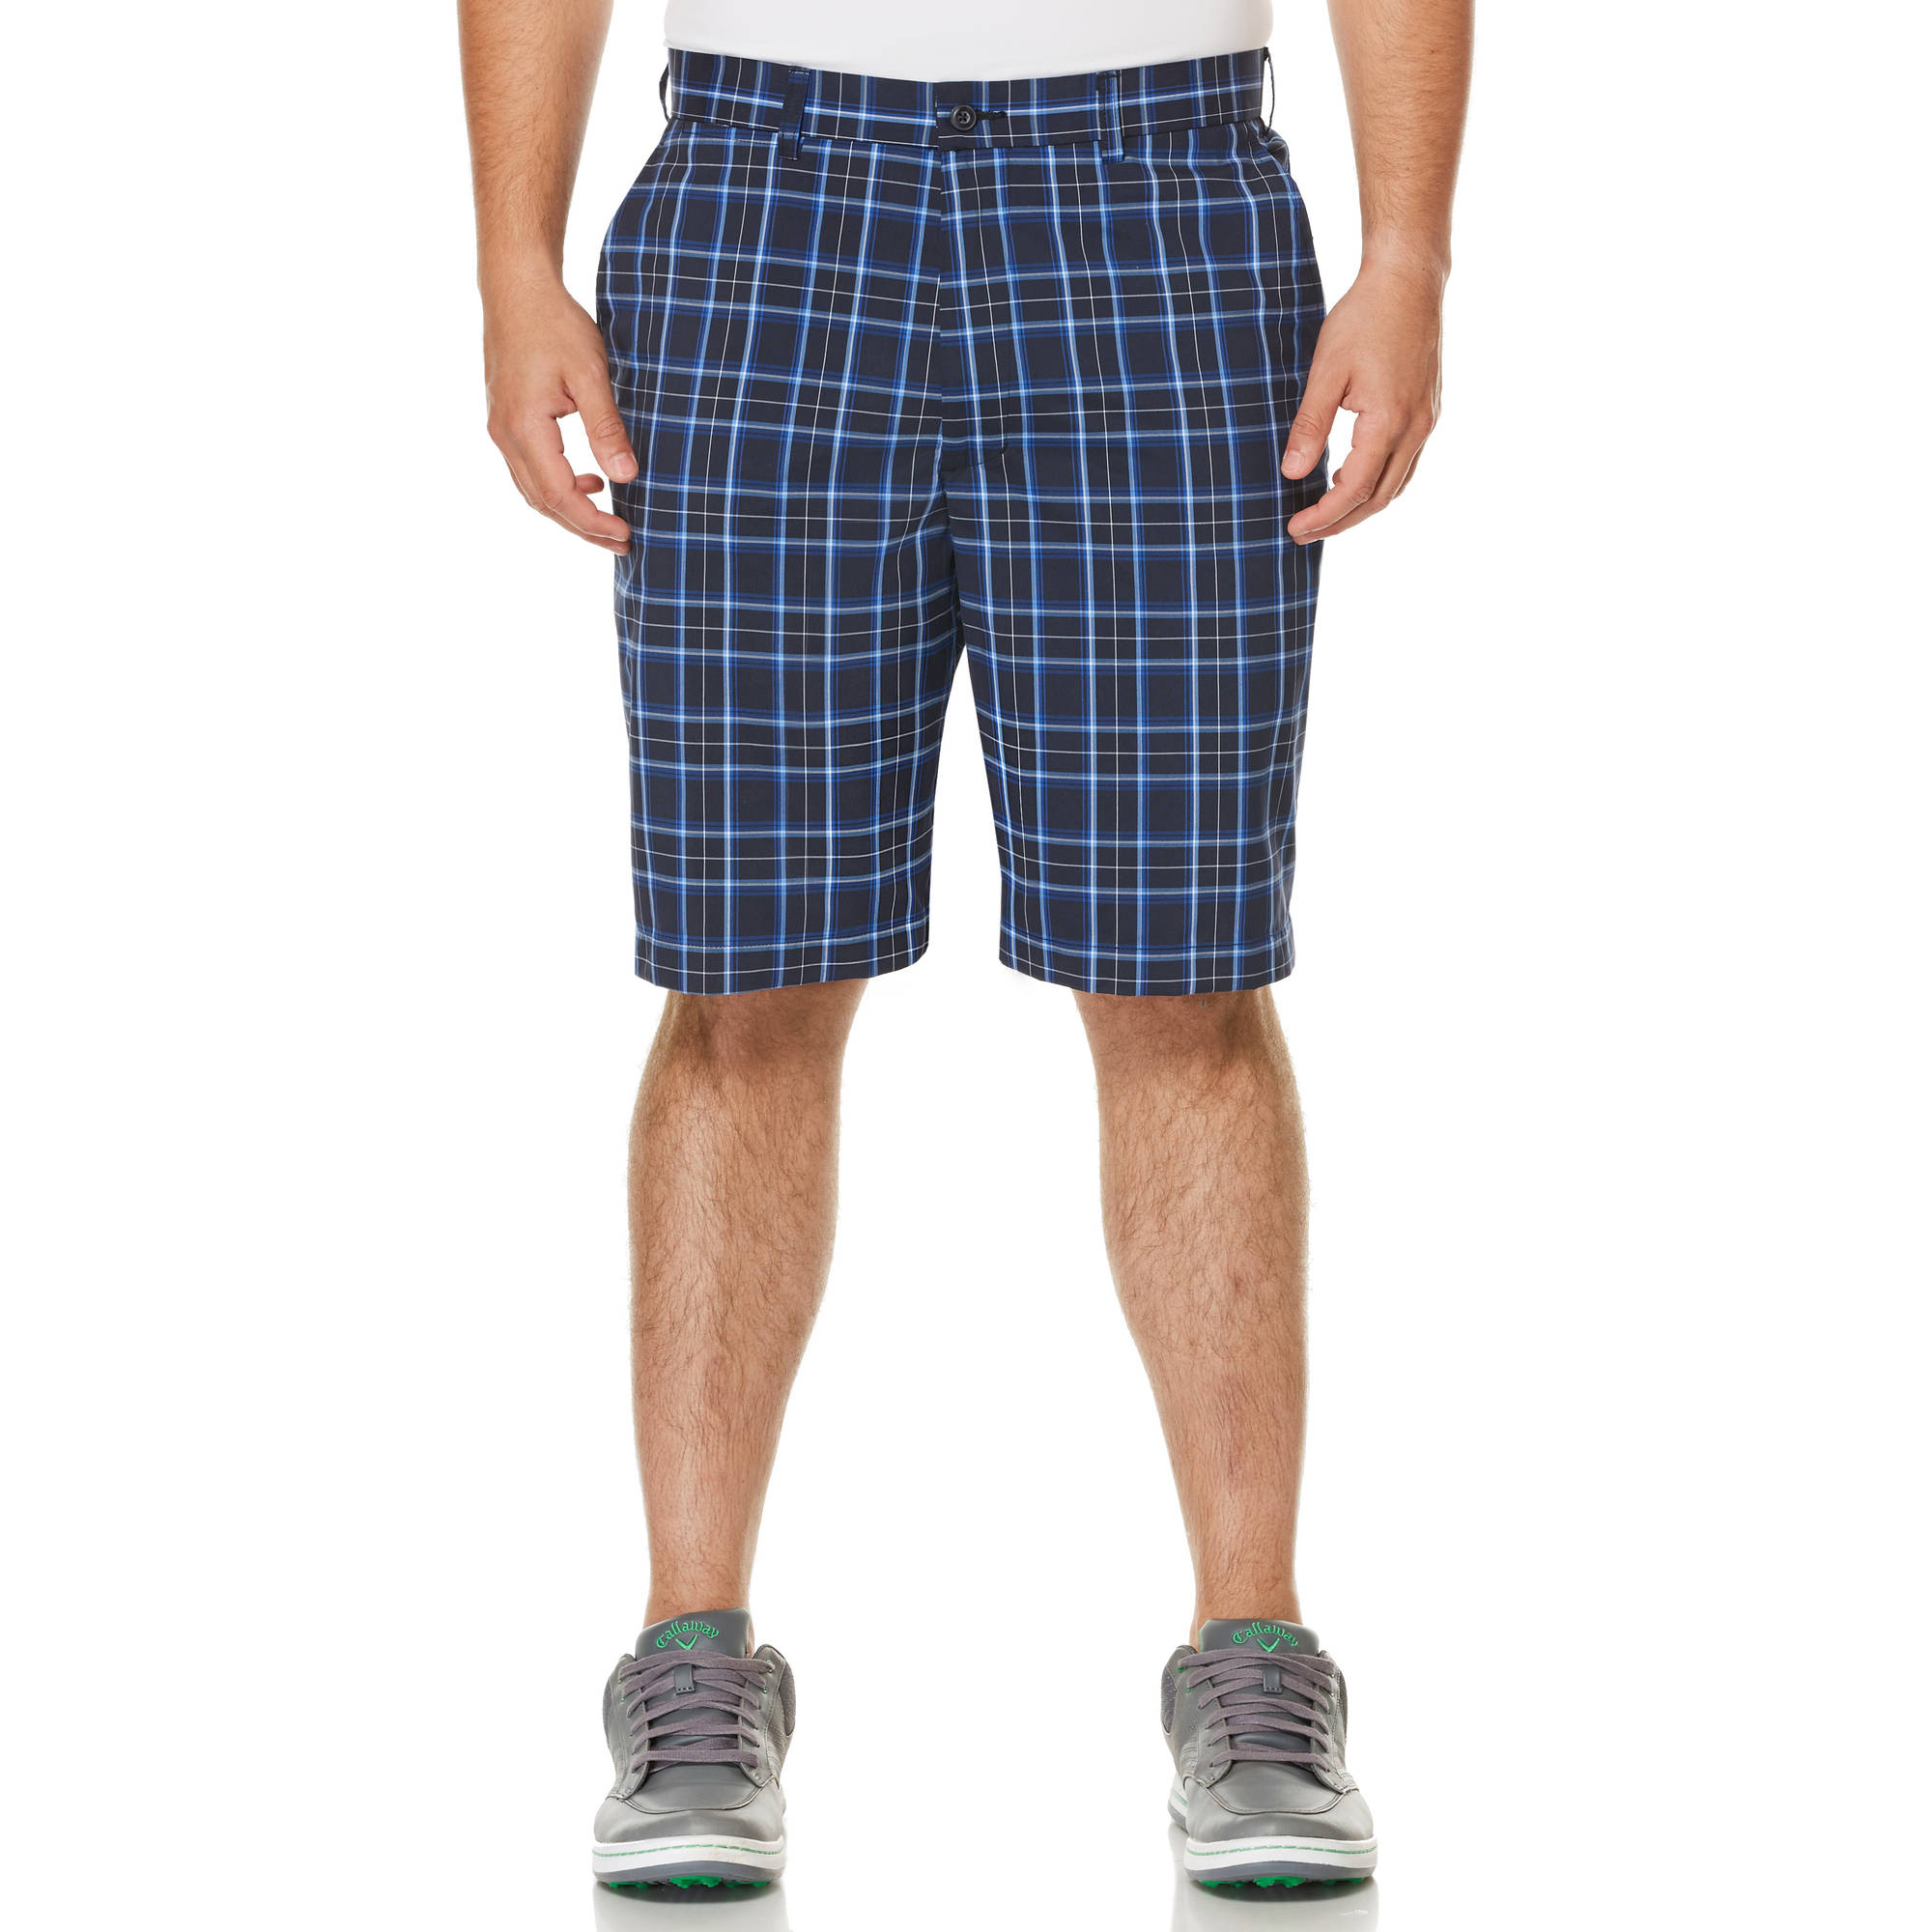 Ben Hogan Men's Flat Front Medium Scale Plaid Golf Shorts